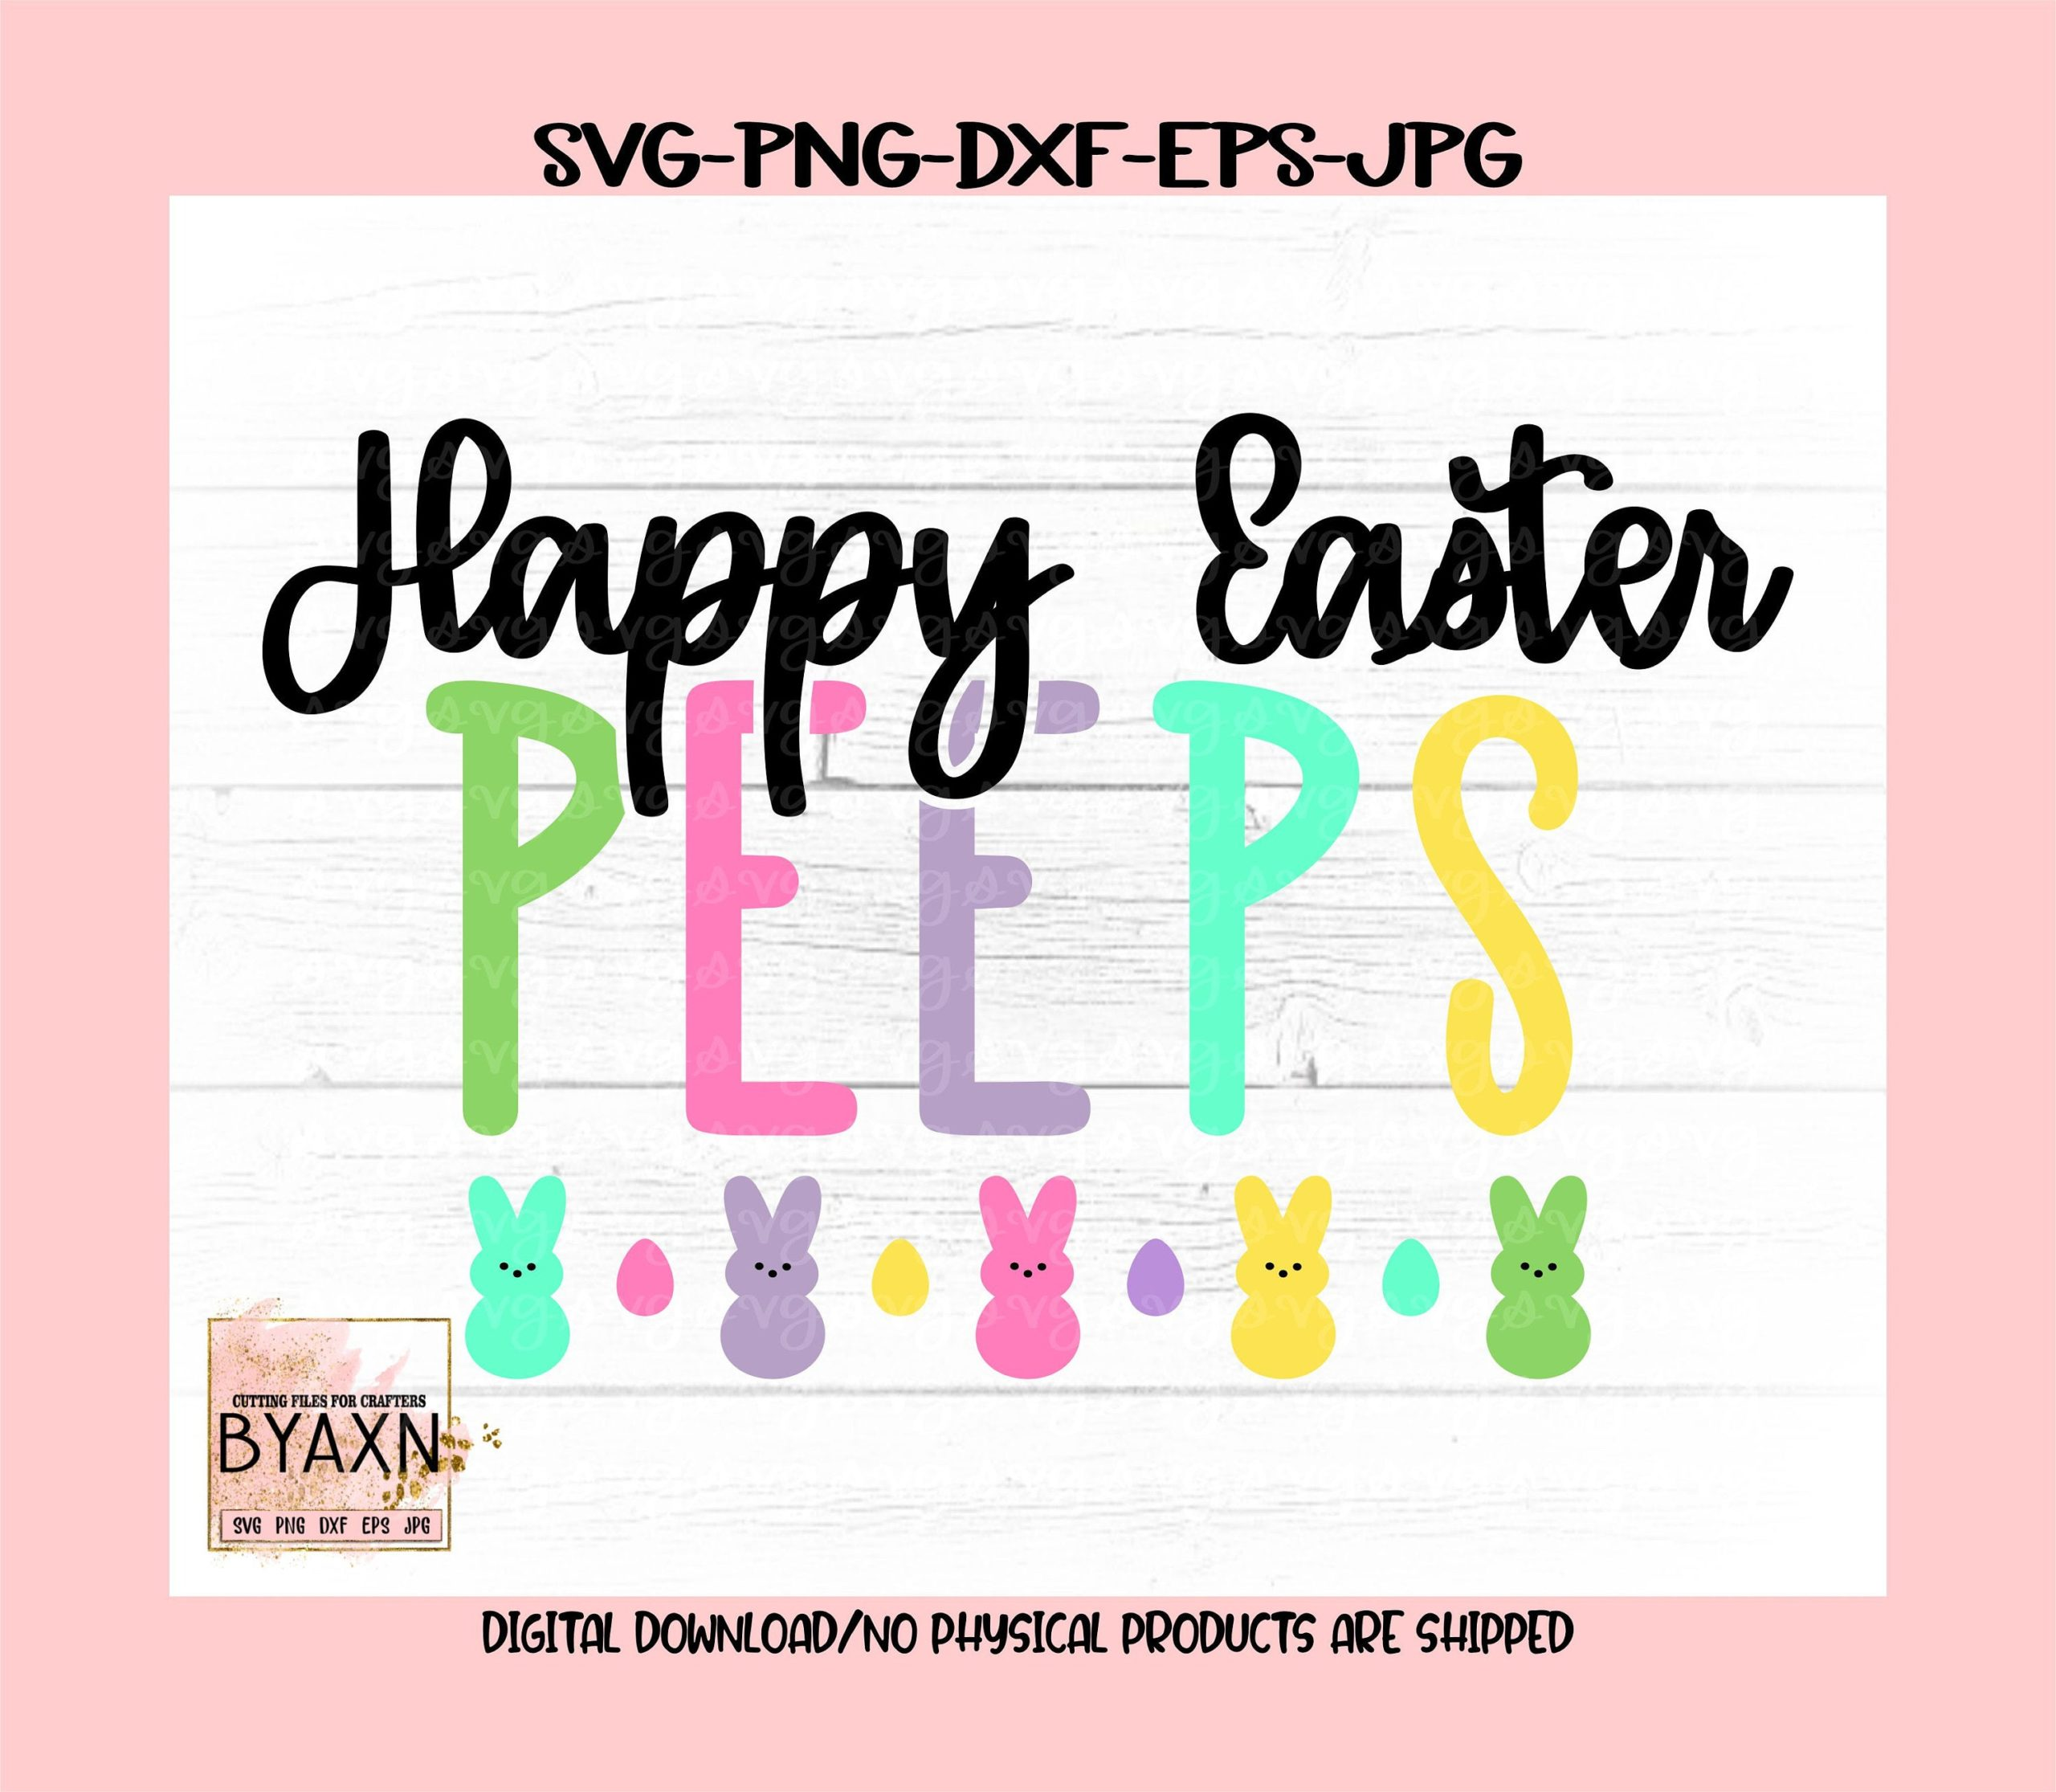 Easter-svghappy-easter-marshmallow-svg-happy-easter-svg-svg-silhouette-easter-svg-design-easter-cut-file-easter-cricut-svg-cricut-60514972